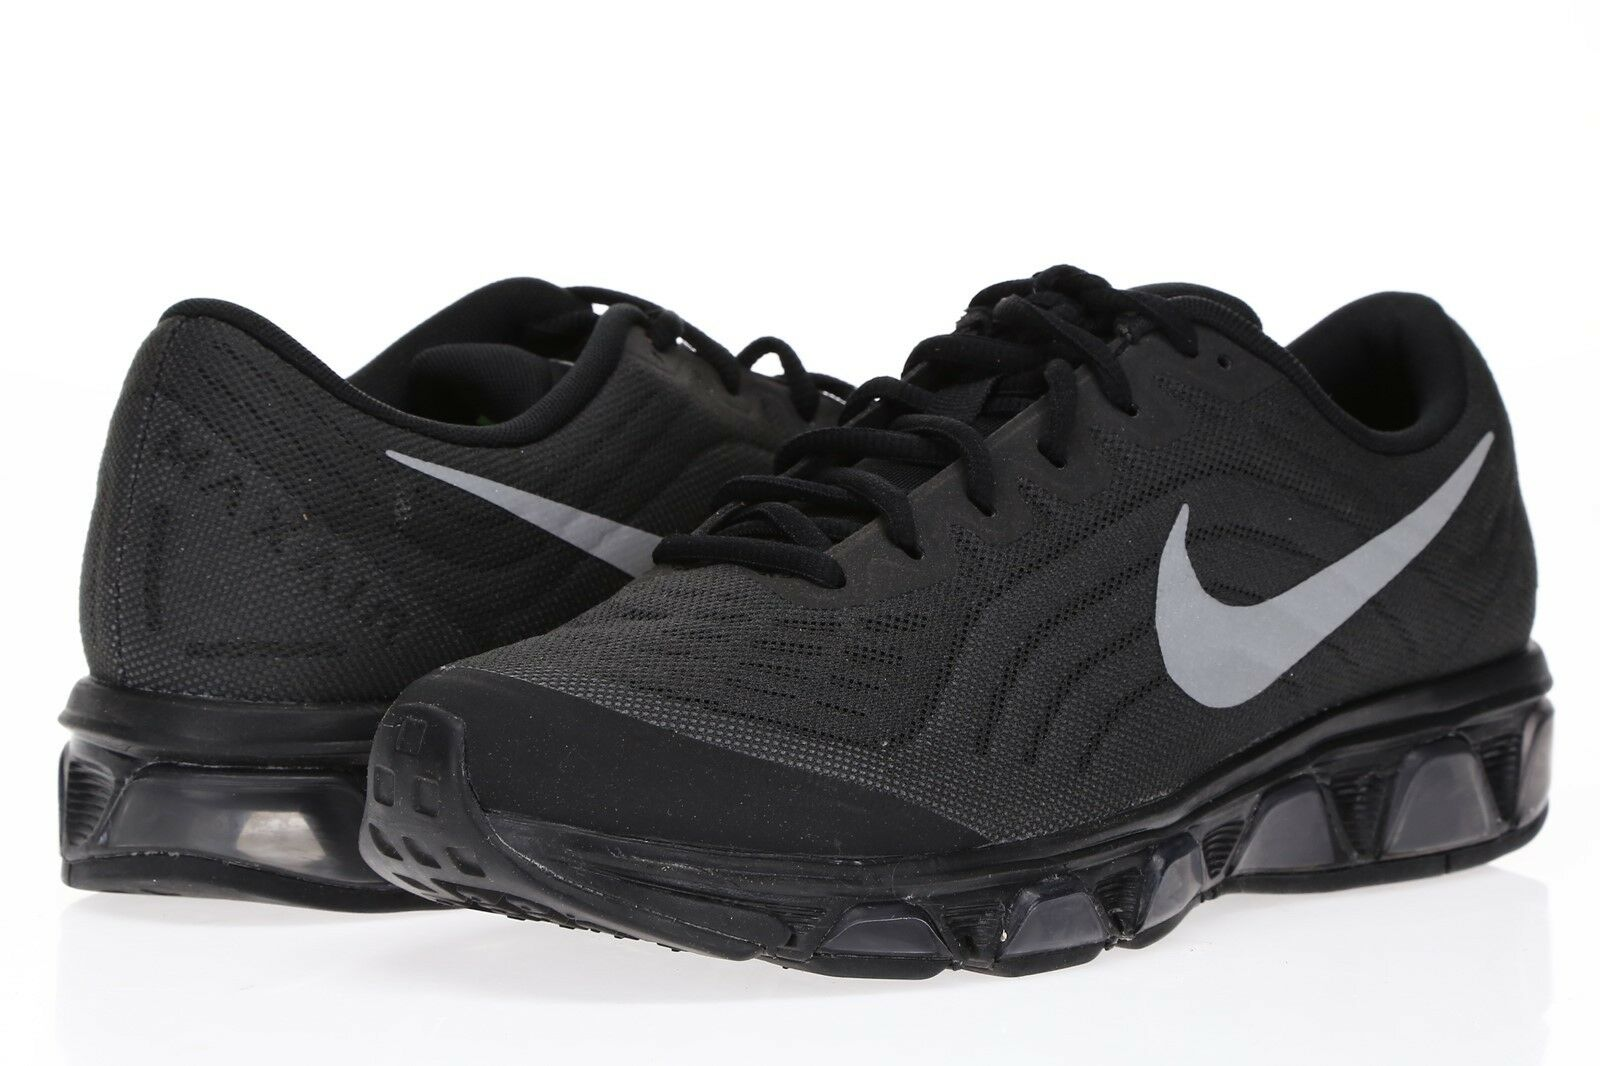 NIKE Mens Max Tailwinds 6 Black Running Sneakers Sz 9